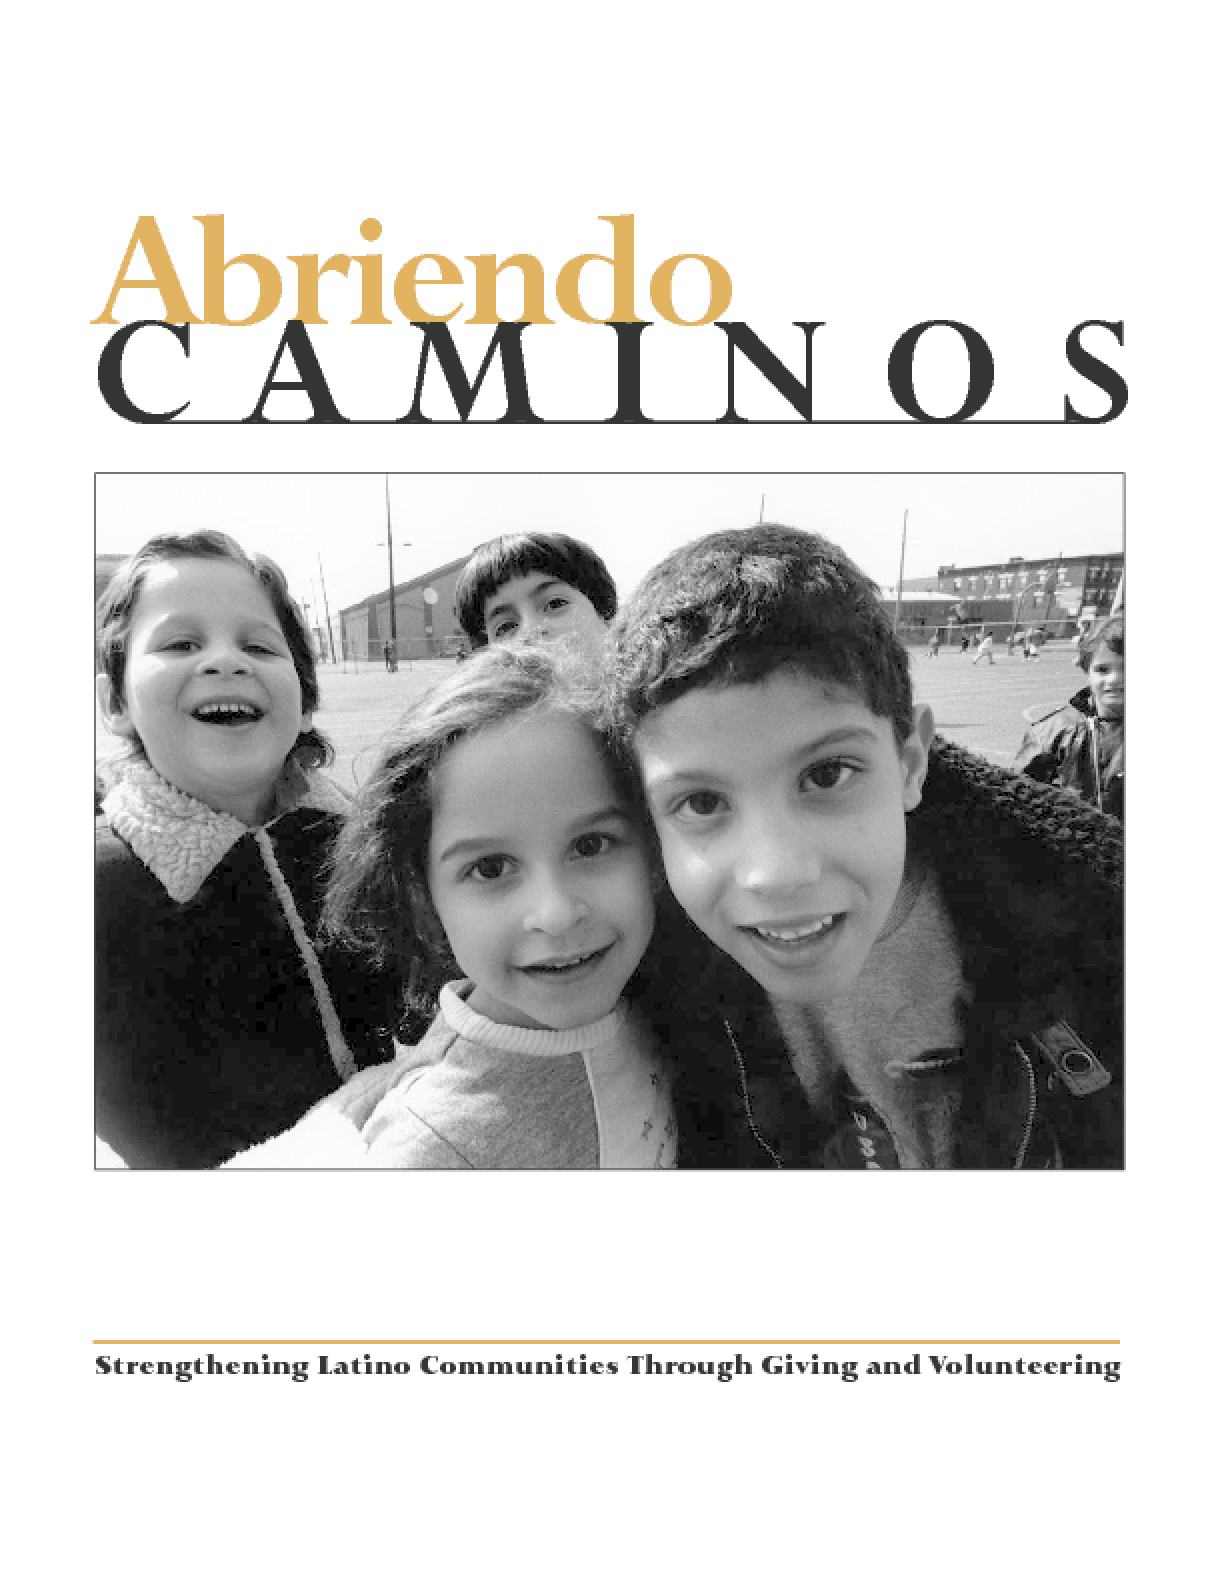 Abriendo Caminos (Strengthening Latino Communities Through Giving and Volunteering)